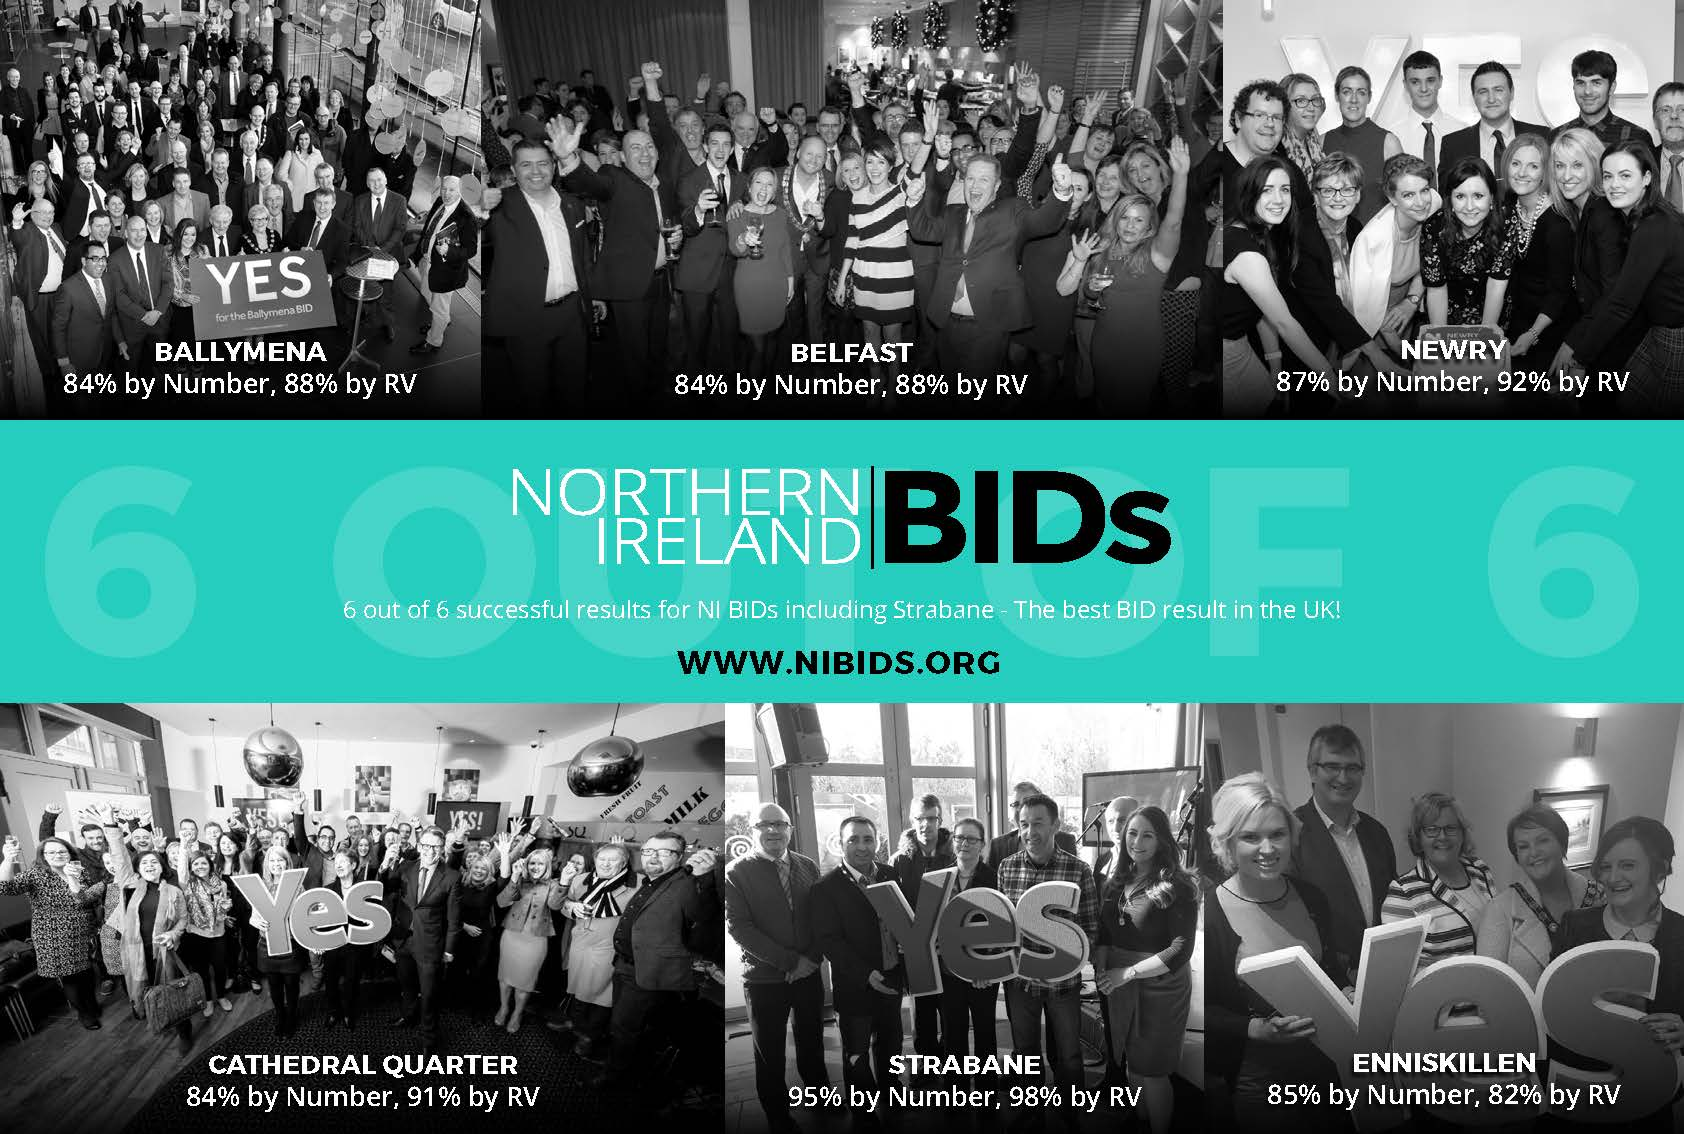 a 100% success rate for the NI BIDs academy